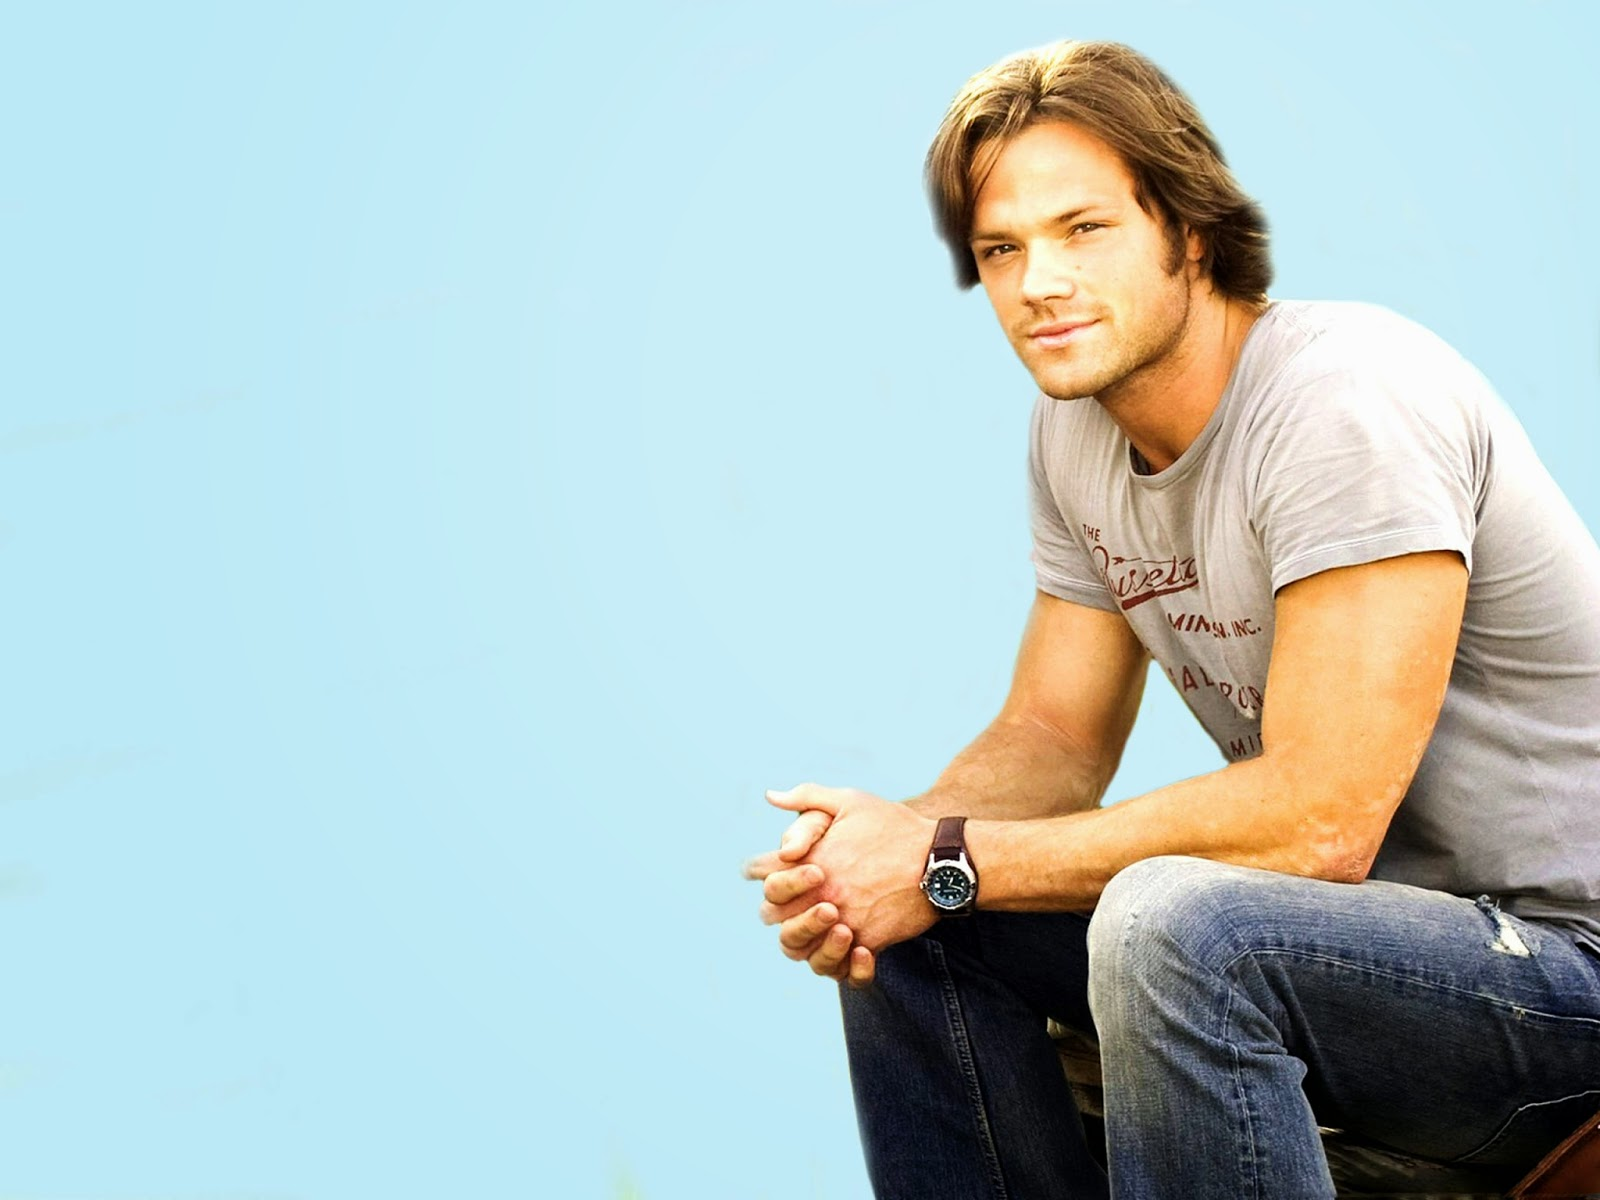 Jared padalecki quotes - Jared Padalecki Quotes Follow Us Follow